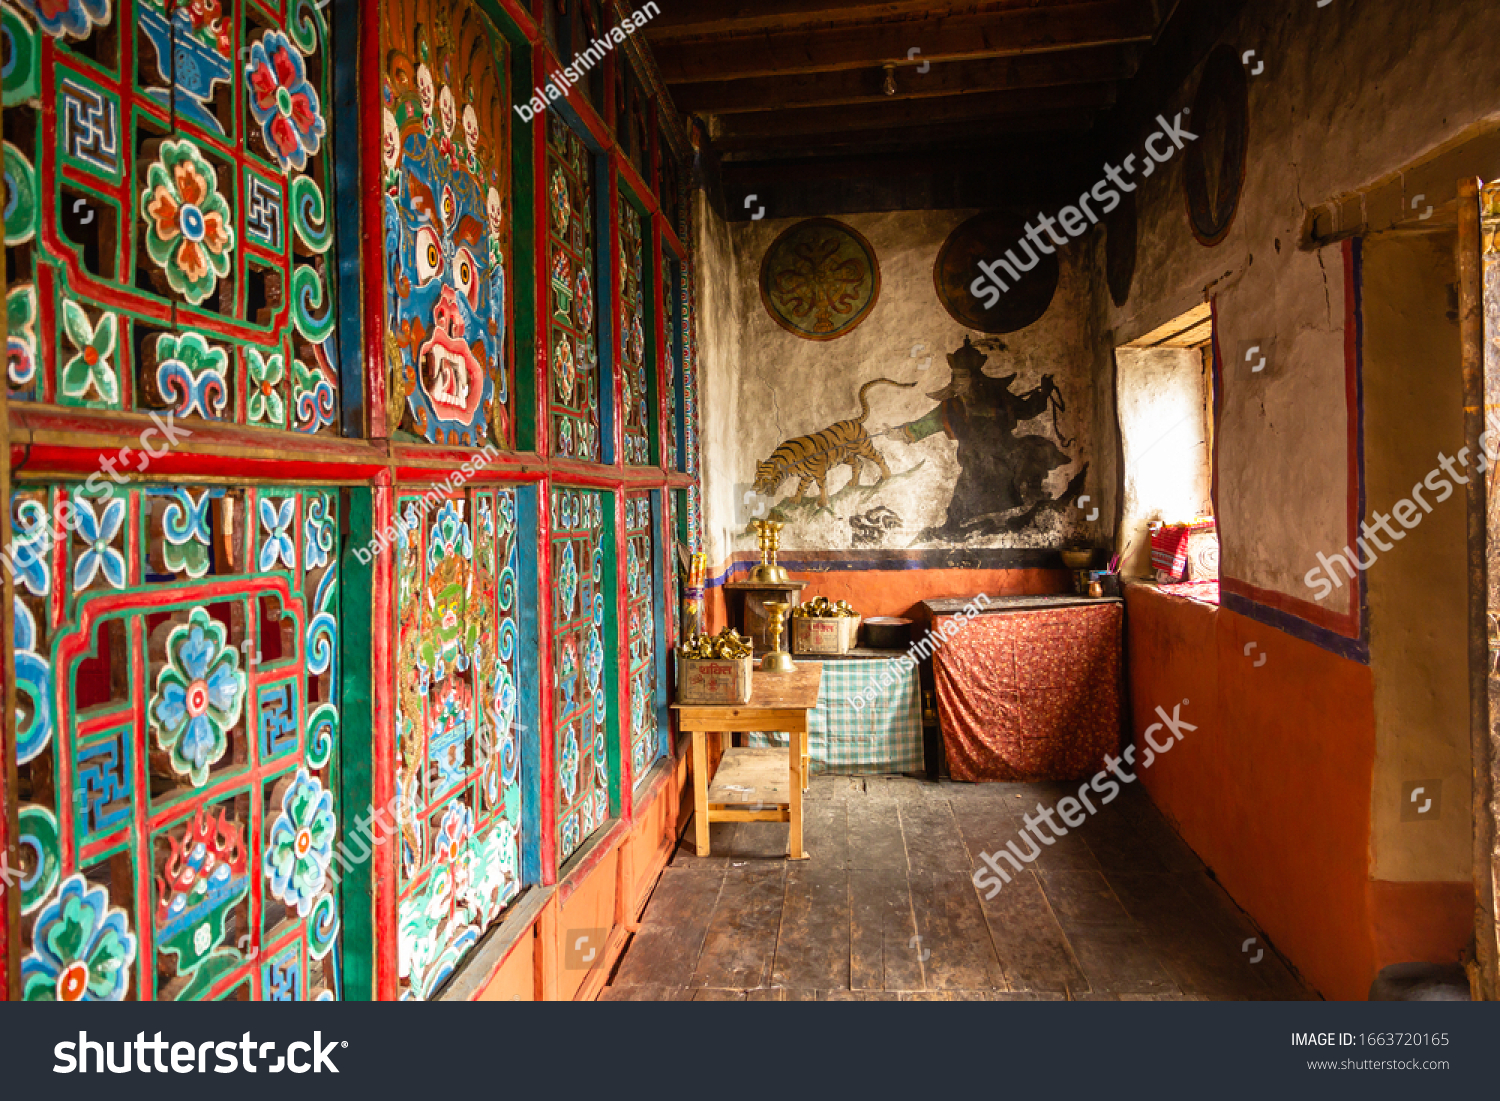 Muktinath, Mustang, Nepal - April 2015: Colorful murals inside the ancient Buddhist monastery at Muktinath in Nepal.